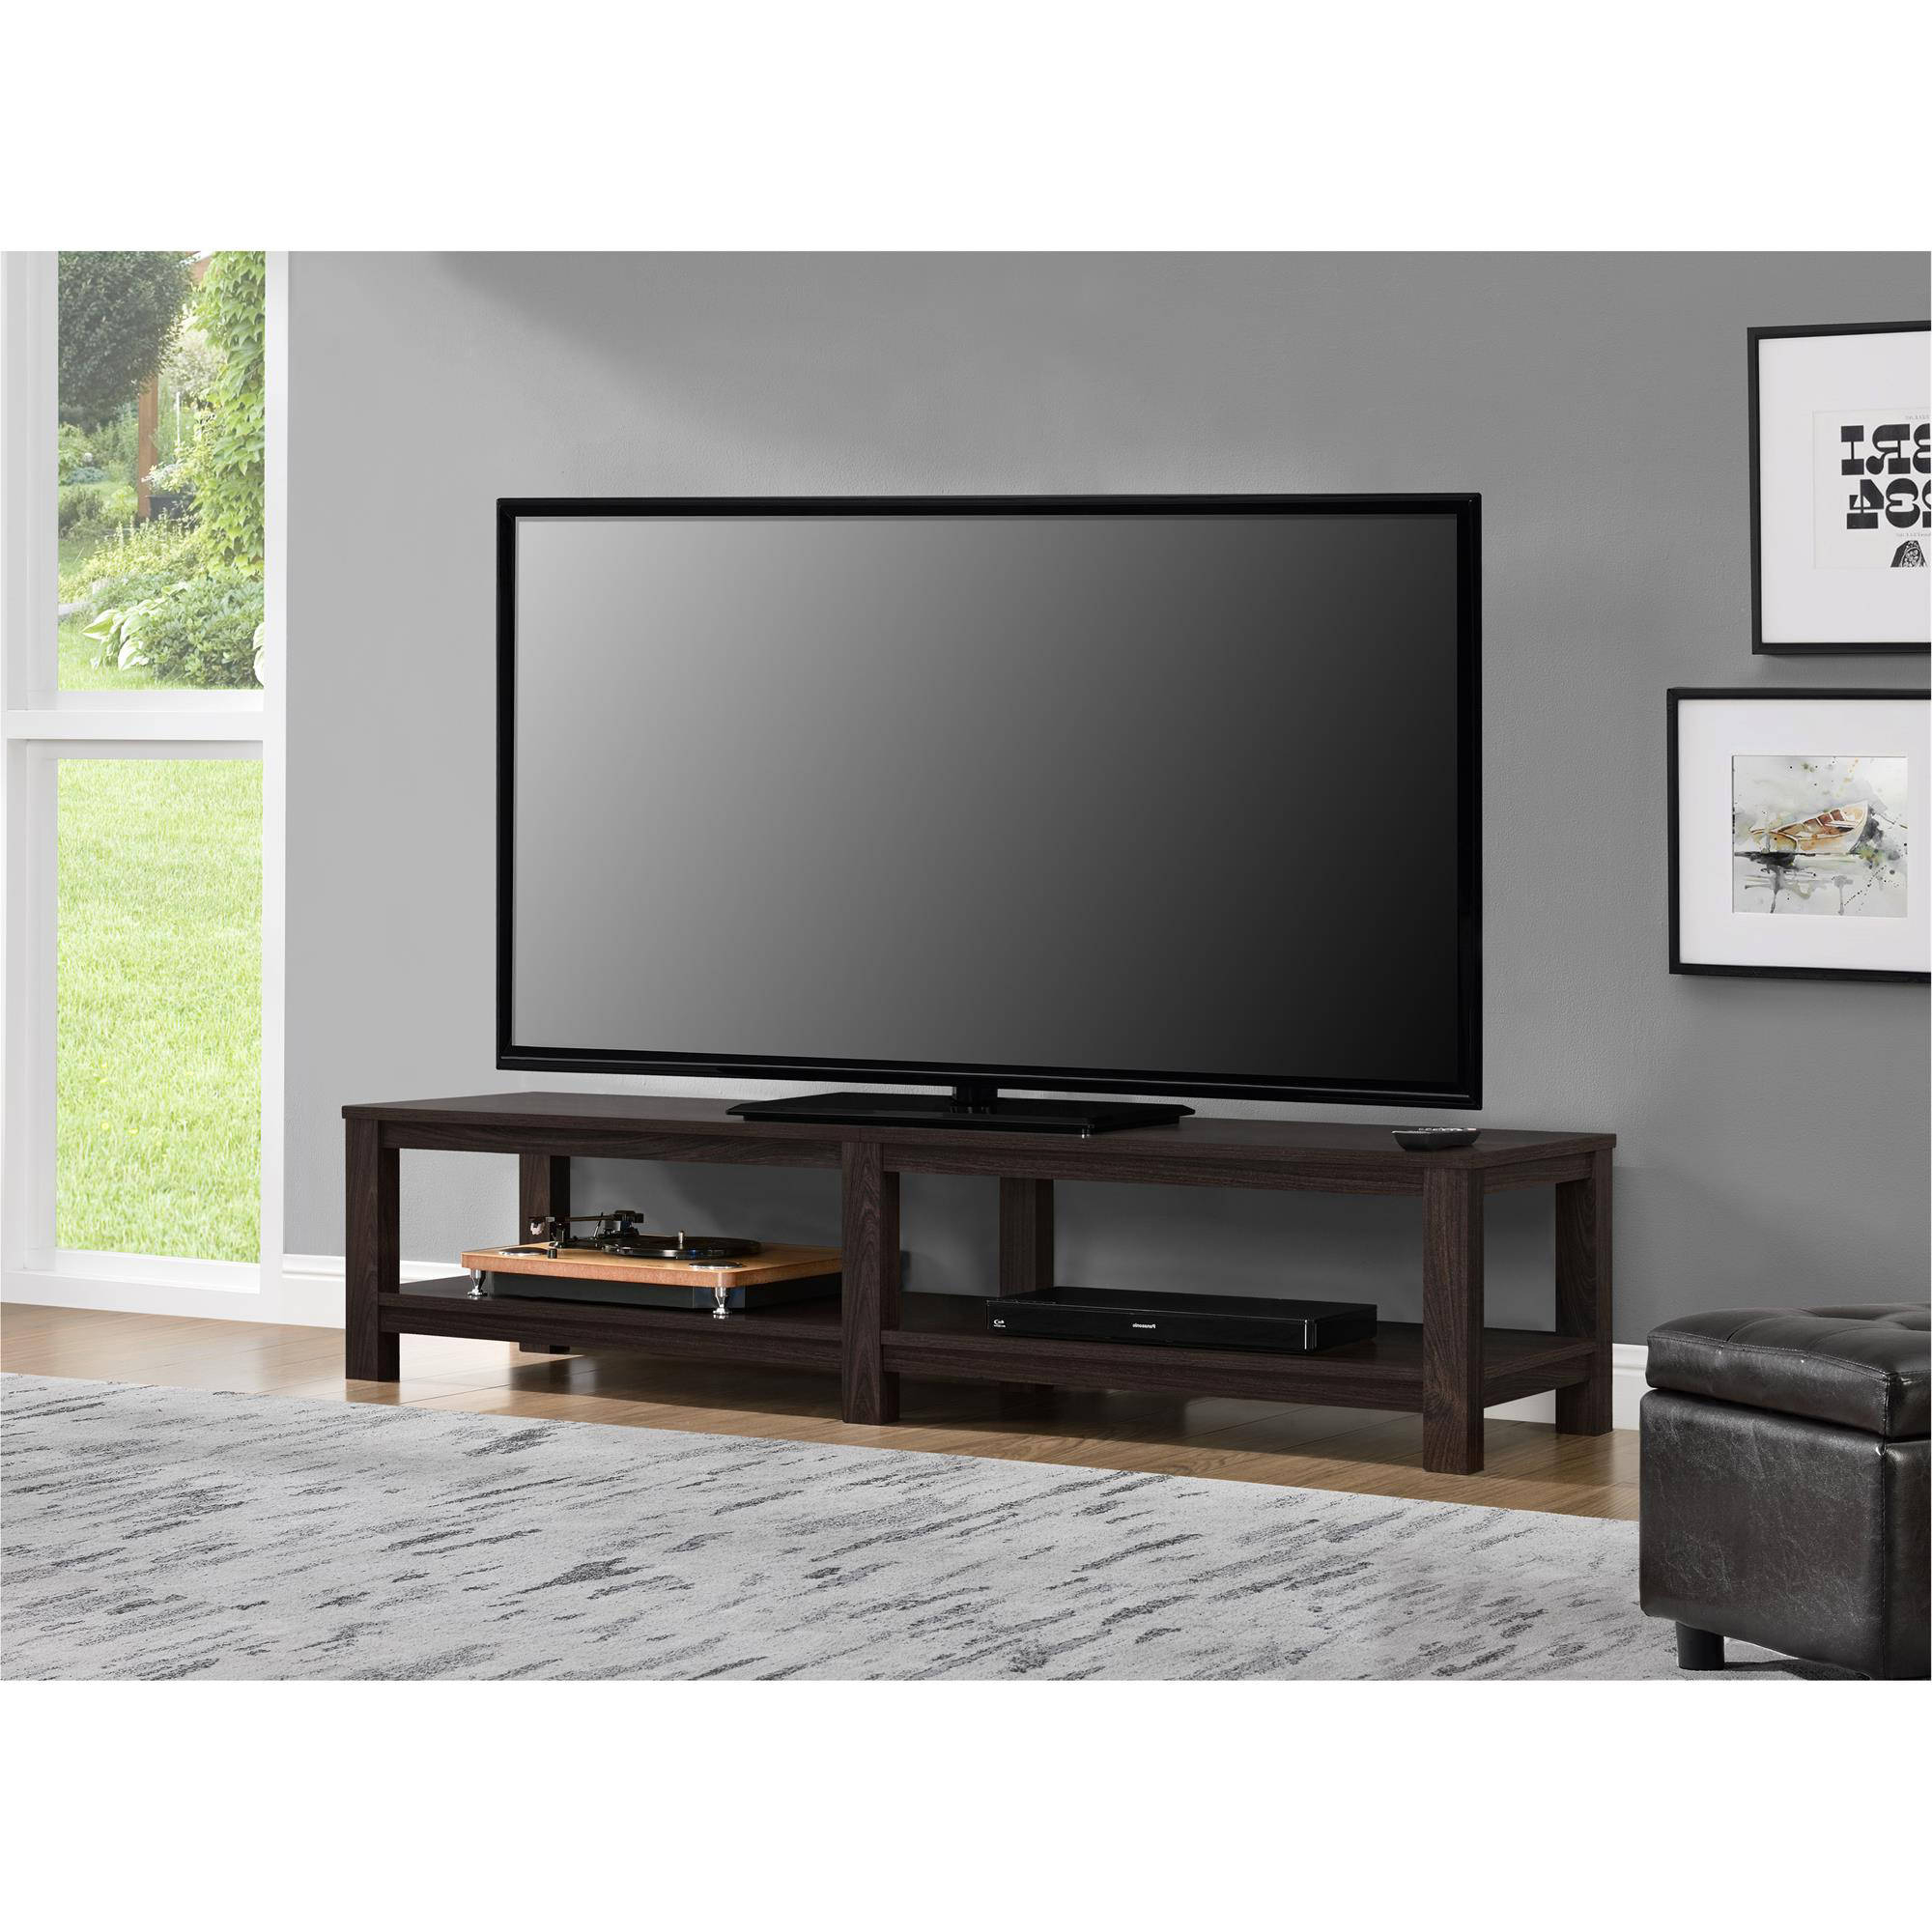 """Latest Entertainment Center Tv Stands For Mainstays Parsons Tv Stand For Tvs Up To 65"""", Multiple Colors (View 8 of 20)"""